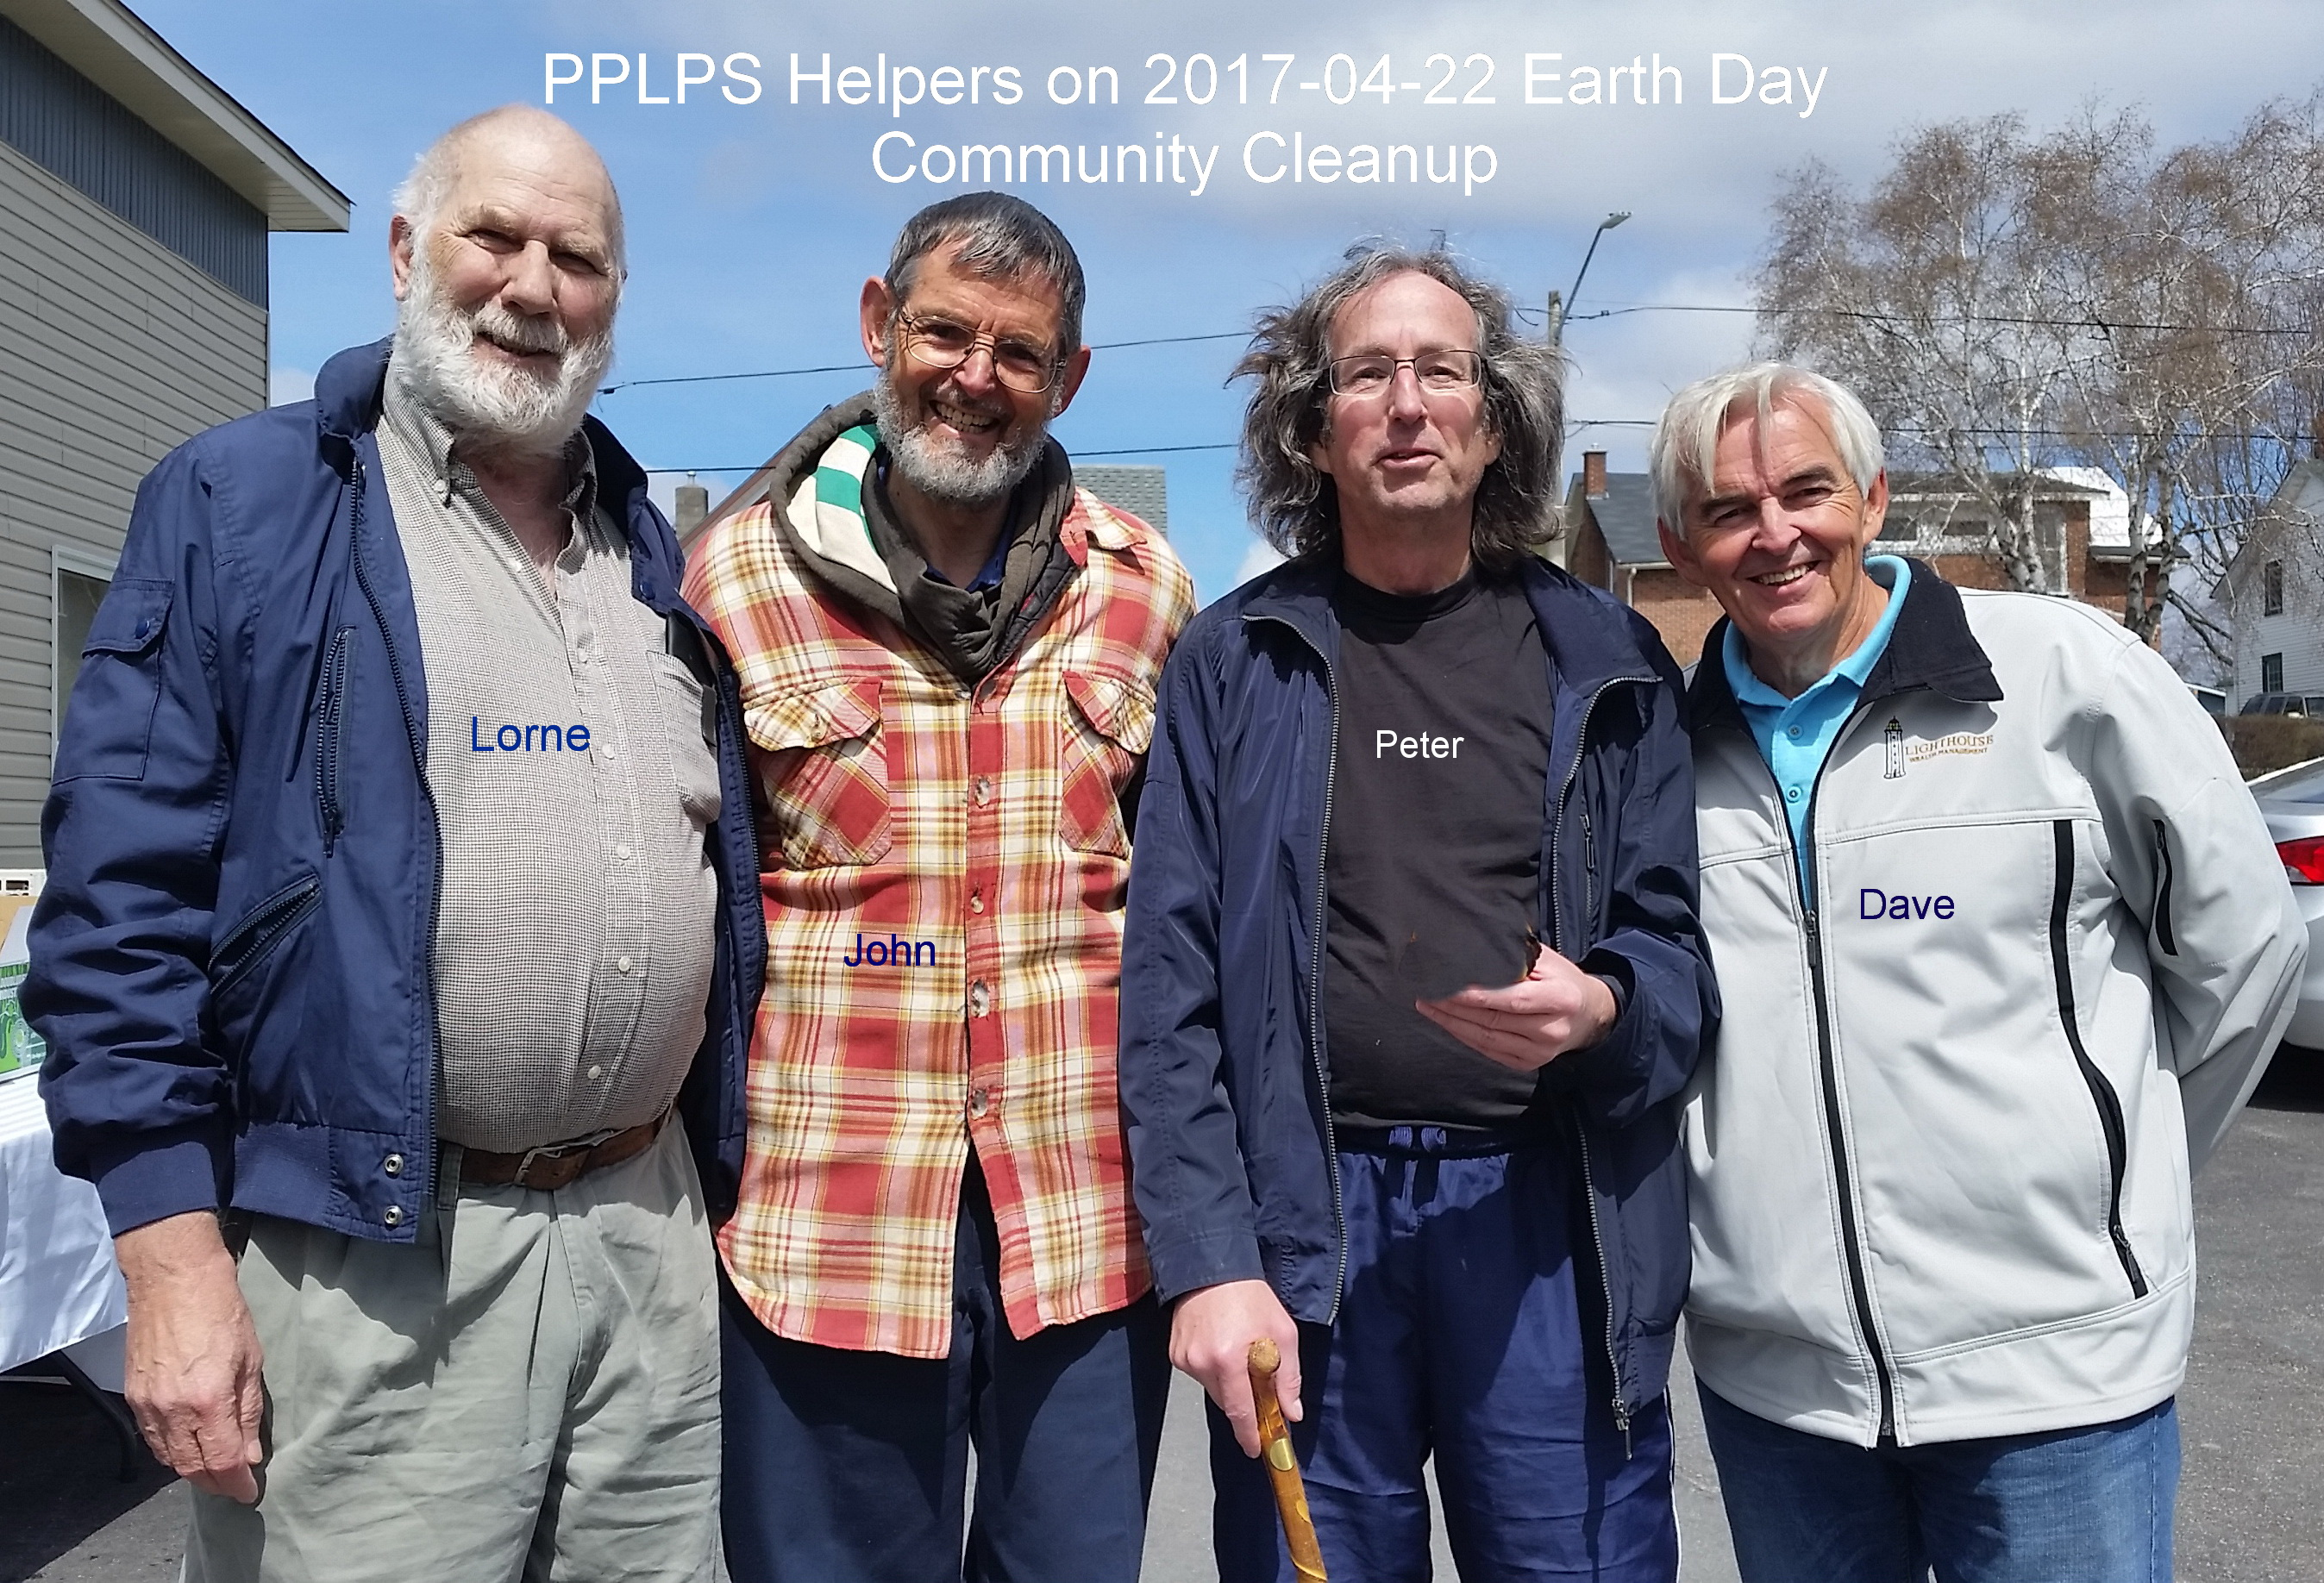 PPLPS volunteers for Earth Day